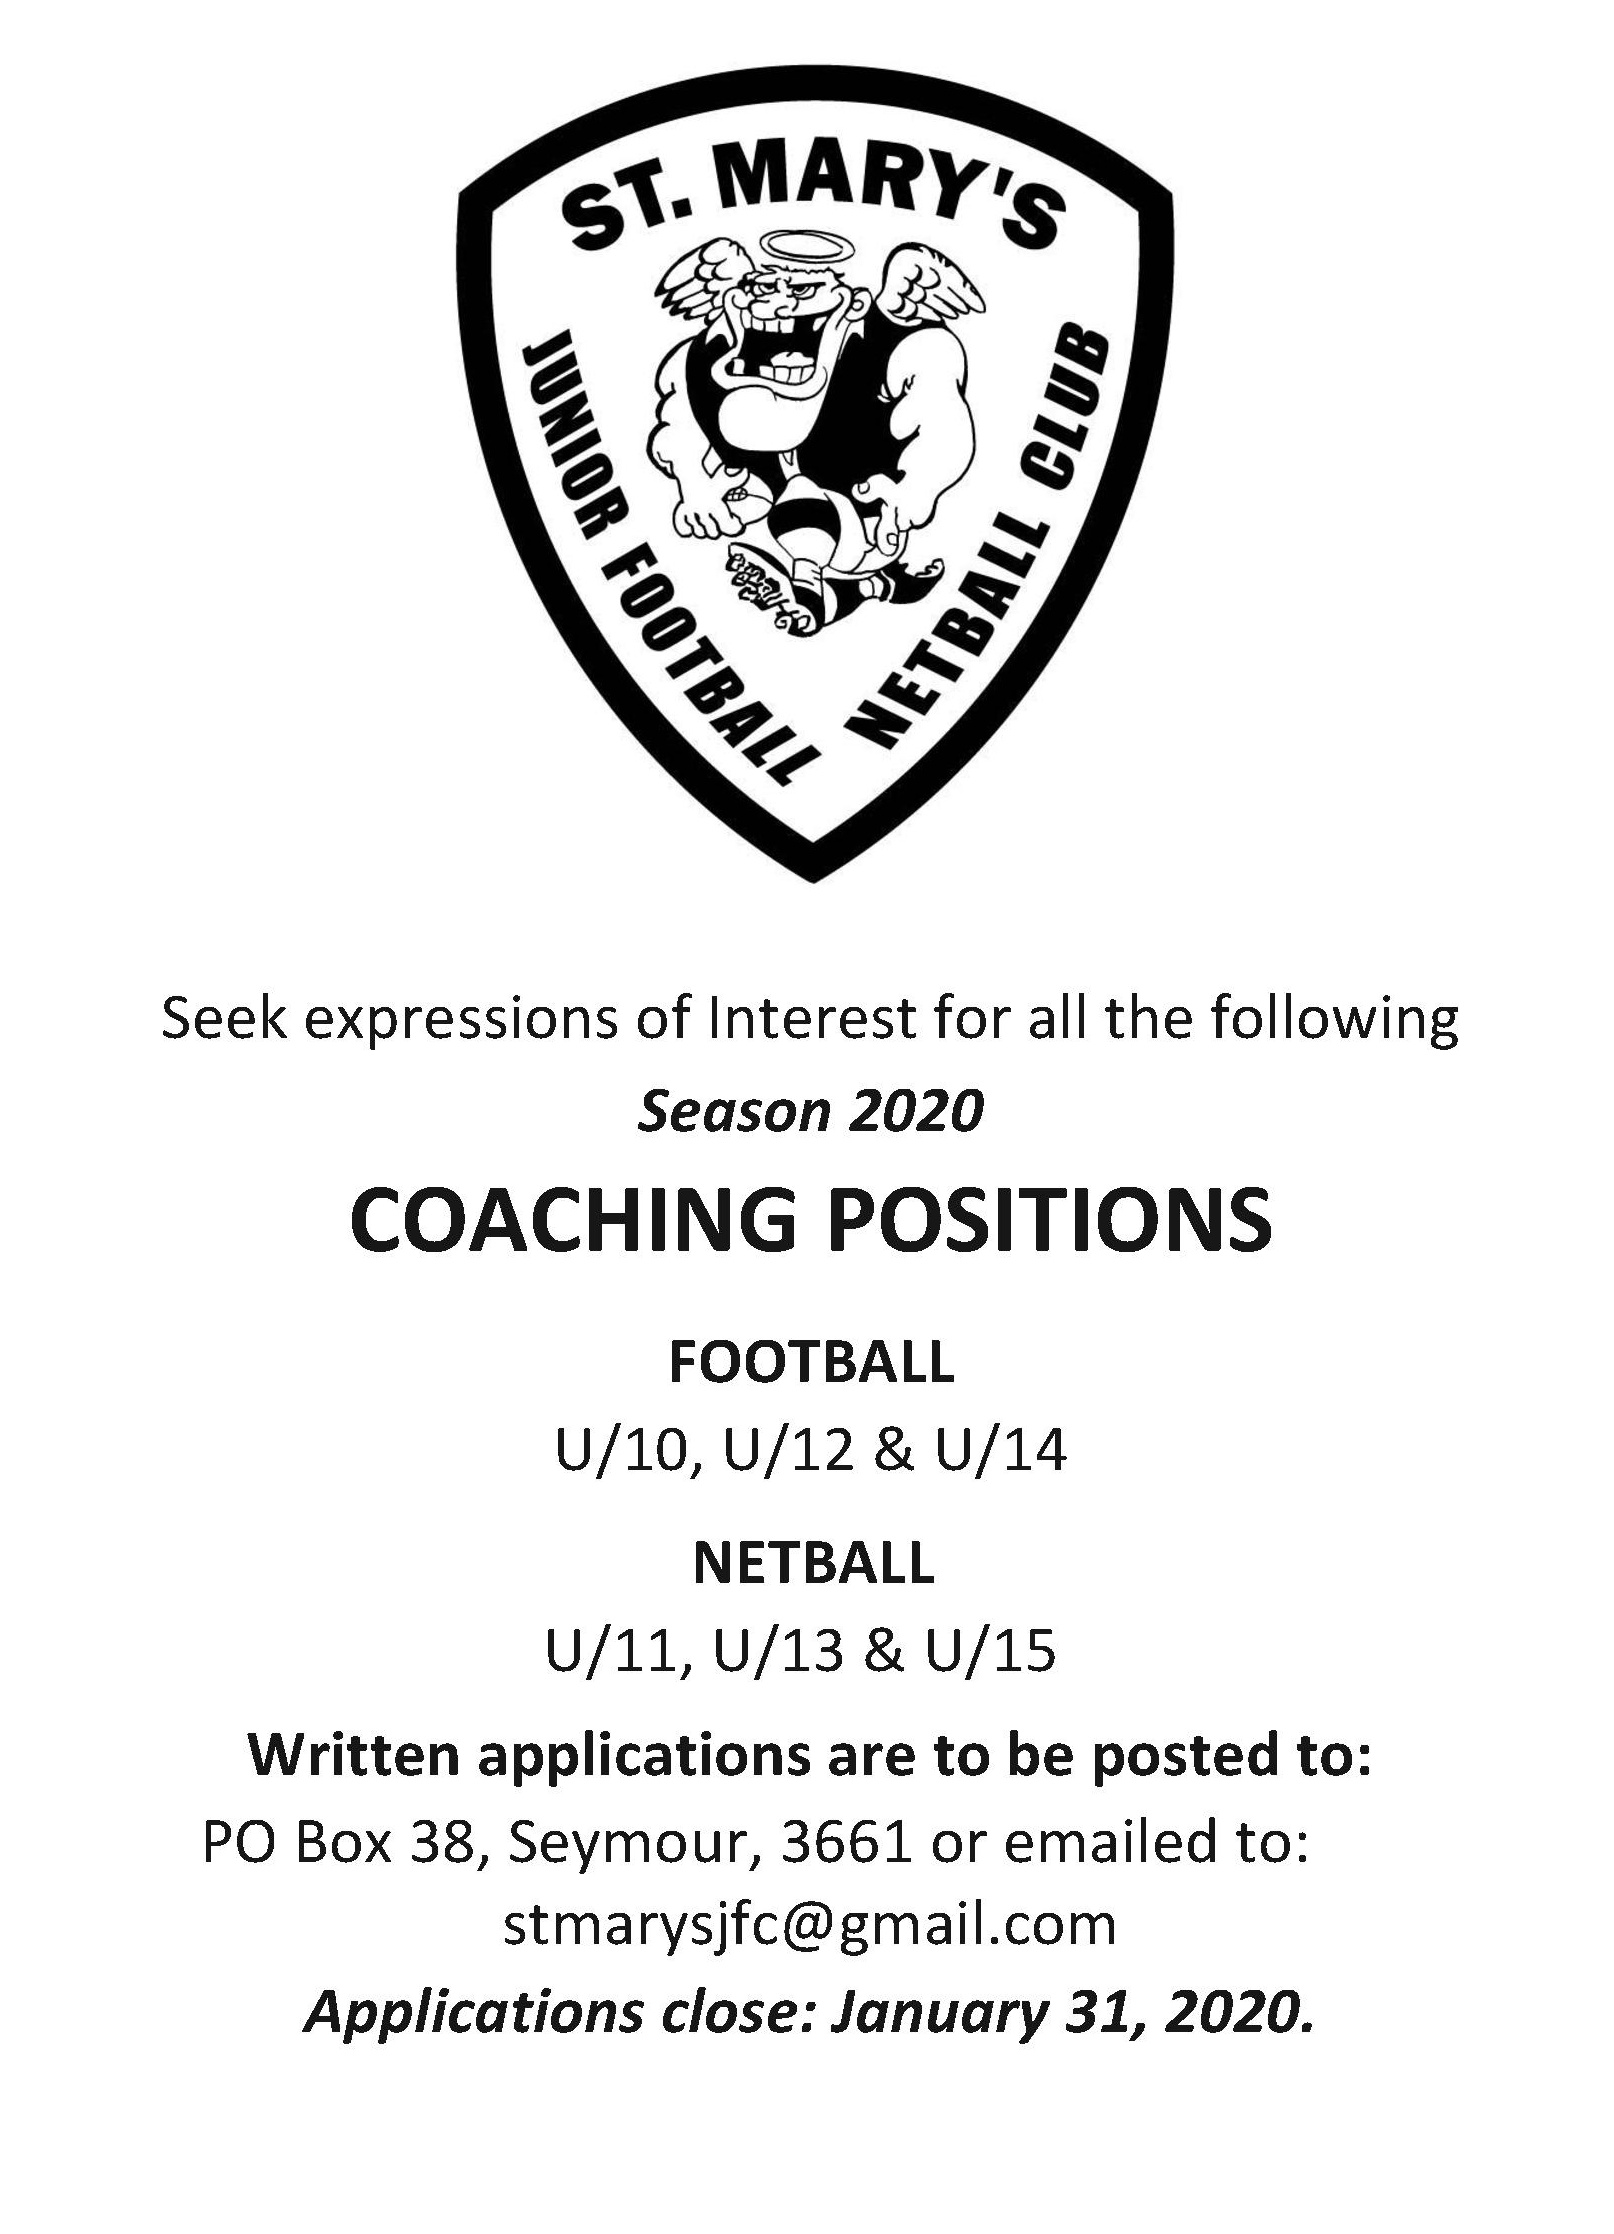 SMJFNC Expressions of Interest Coaching 2020